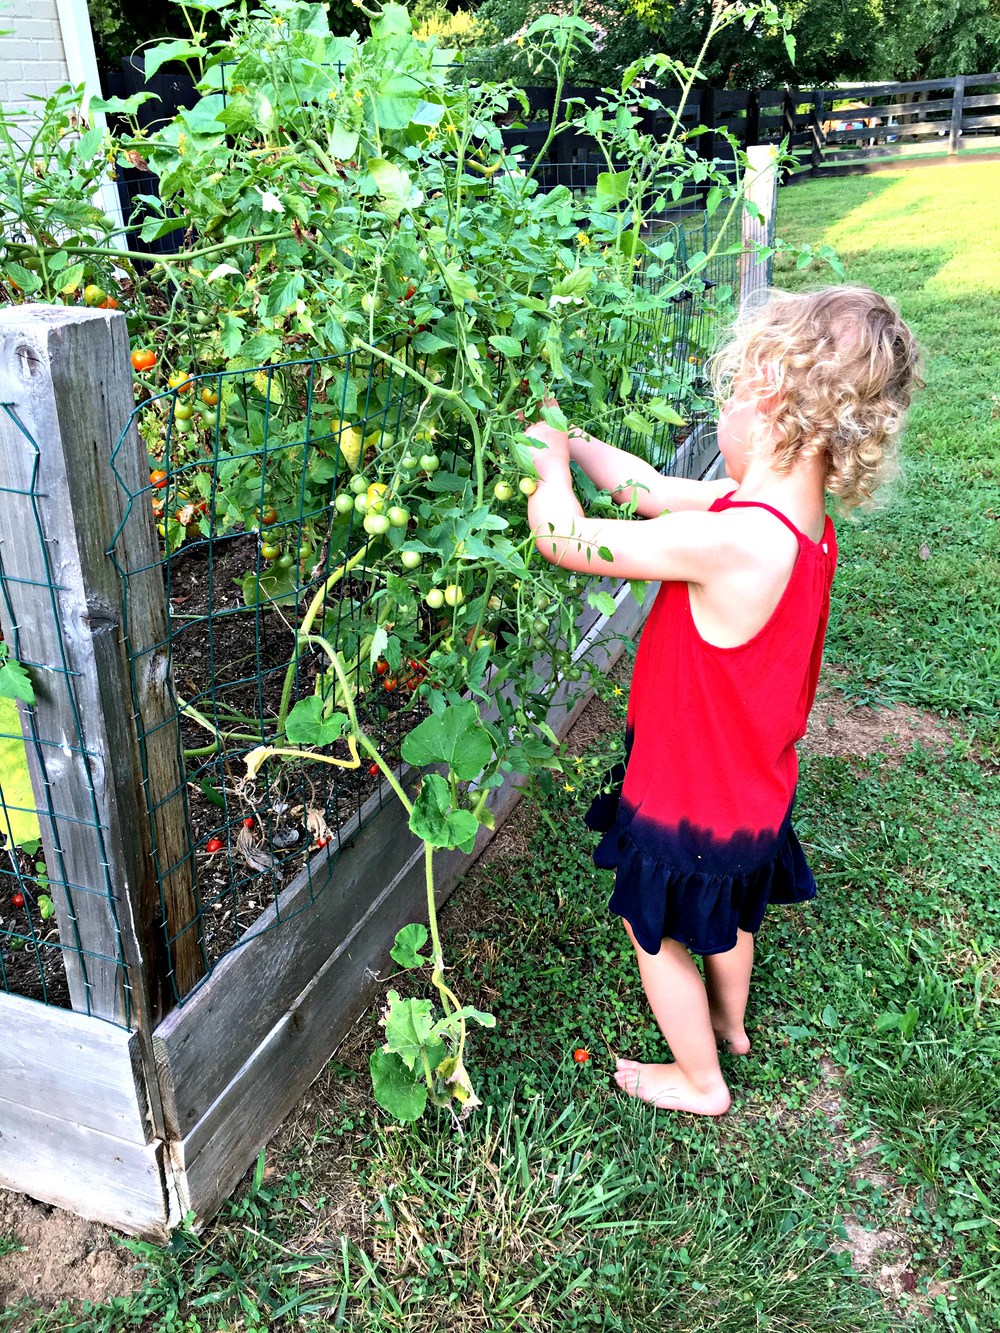 Hattie picking tomatoes July 2016